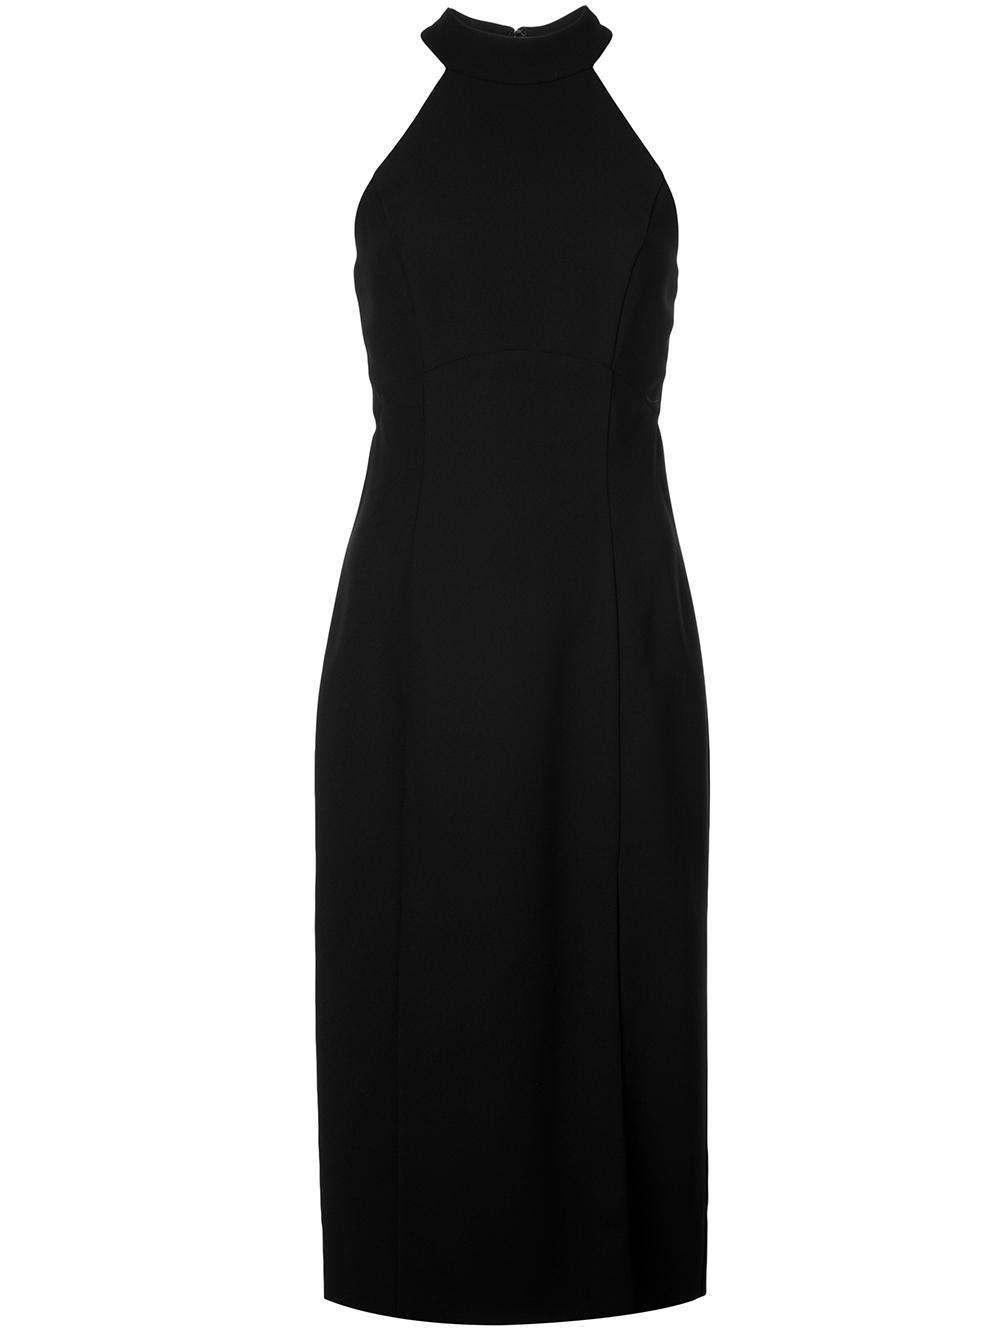 Crepe Halter Neckline Sheath Dress Item # LW141